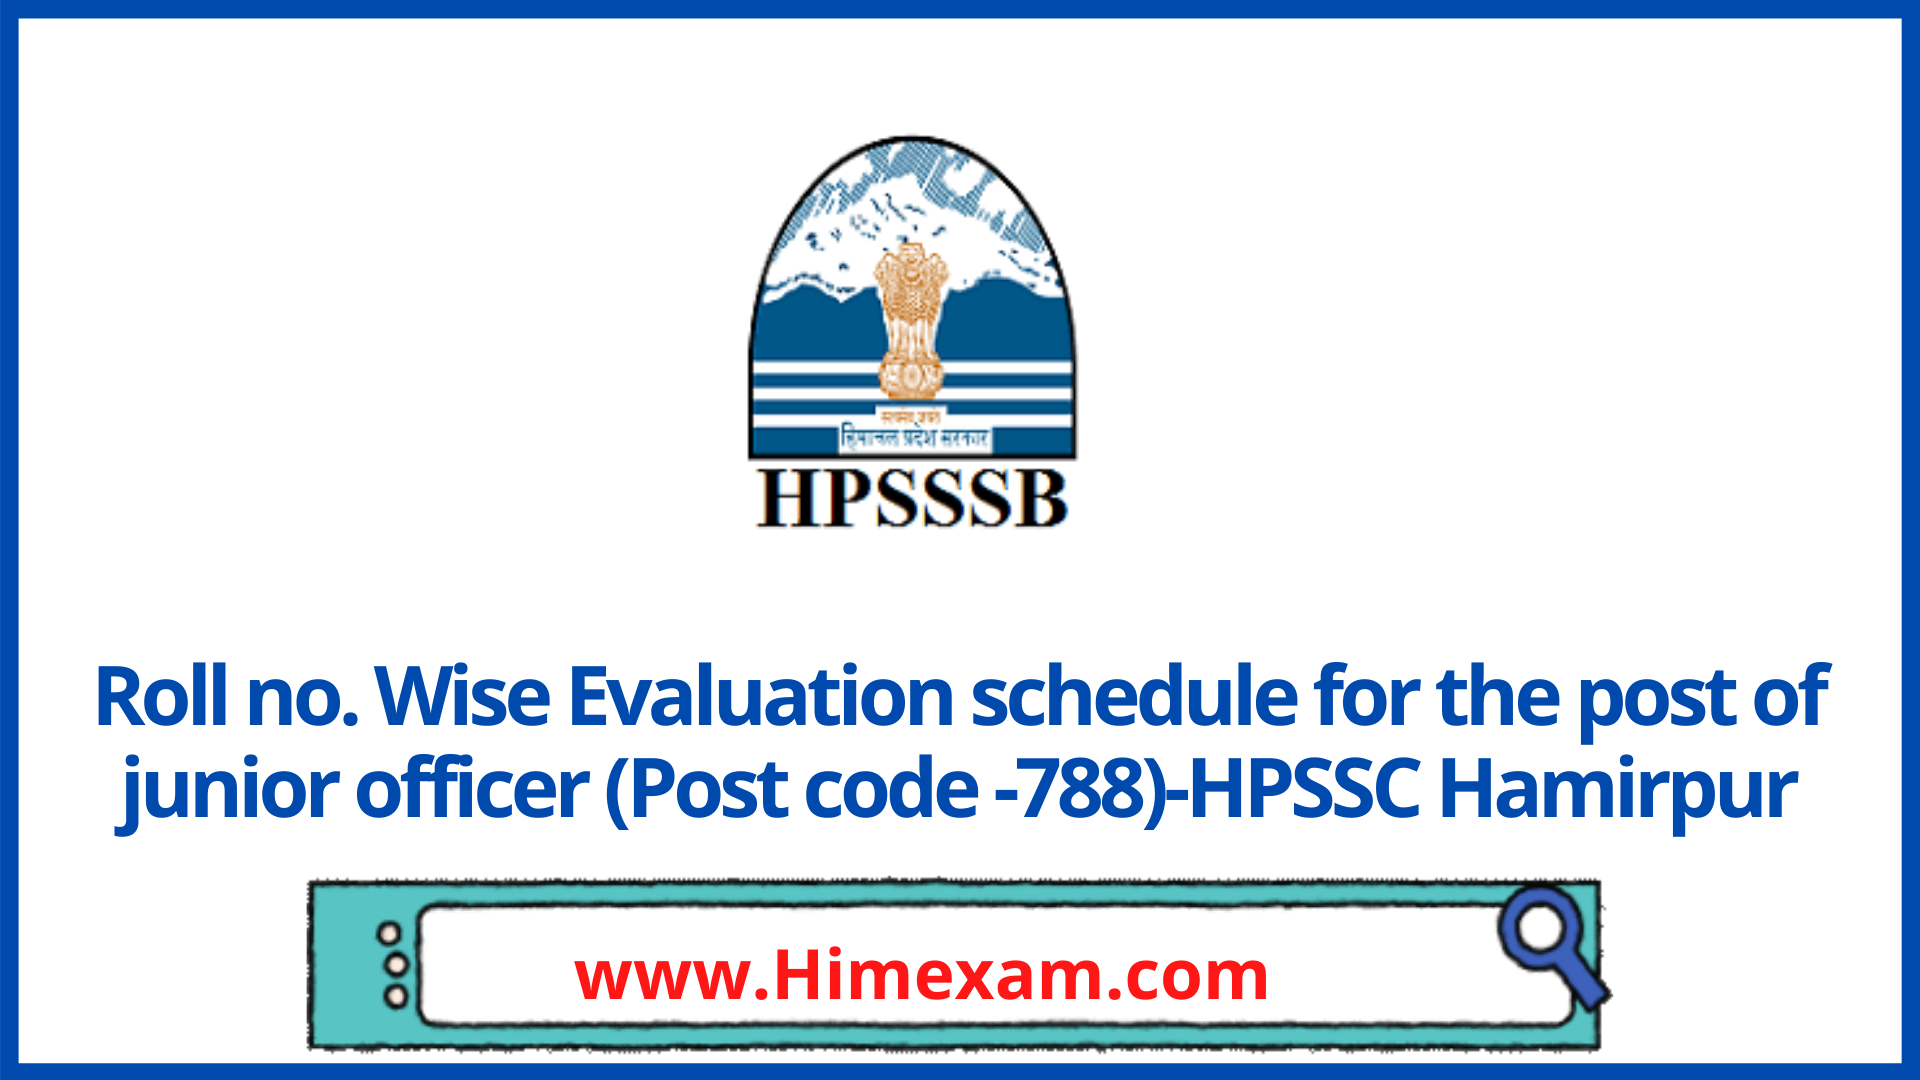 Roll no. Wise Evaluation schedule for the post of junior officer (Post code -788)-HPSSC Hamirpur